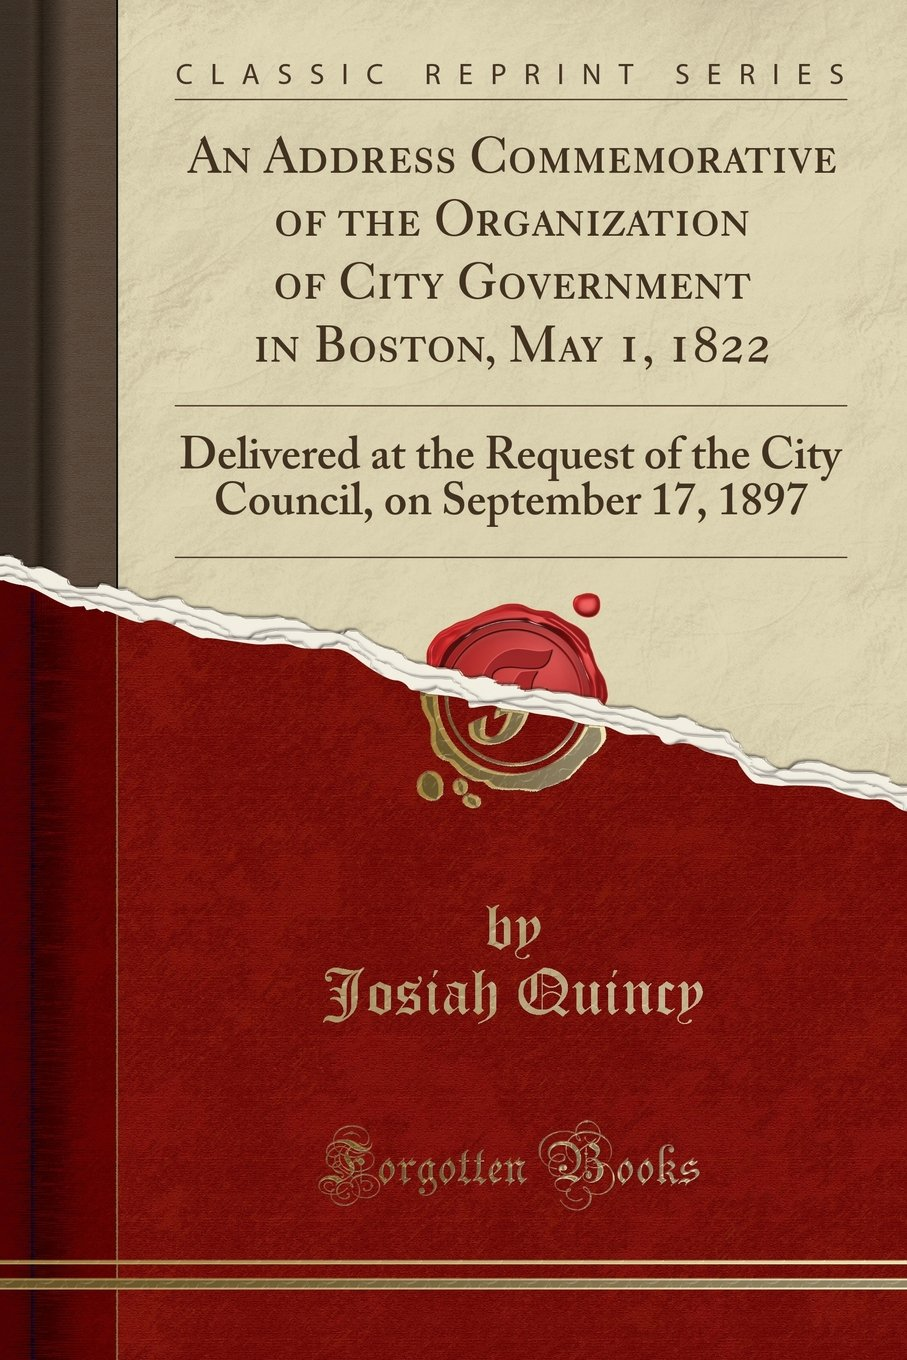 Read Online An Address Commemorative of the Organization of City Government in Boston, May 1, 1822: Delivered at the Request of the City Council, on September 17, 1897 (Classic Reprint) ebook